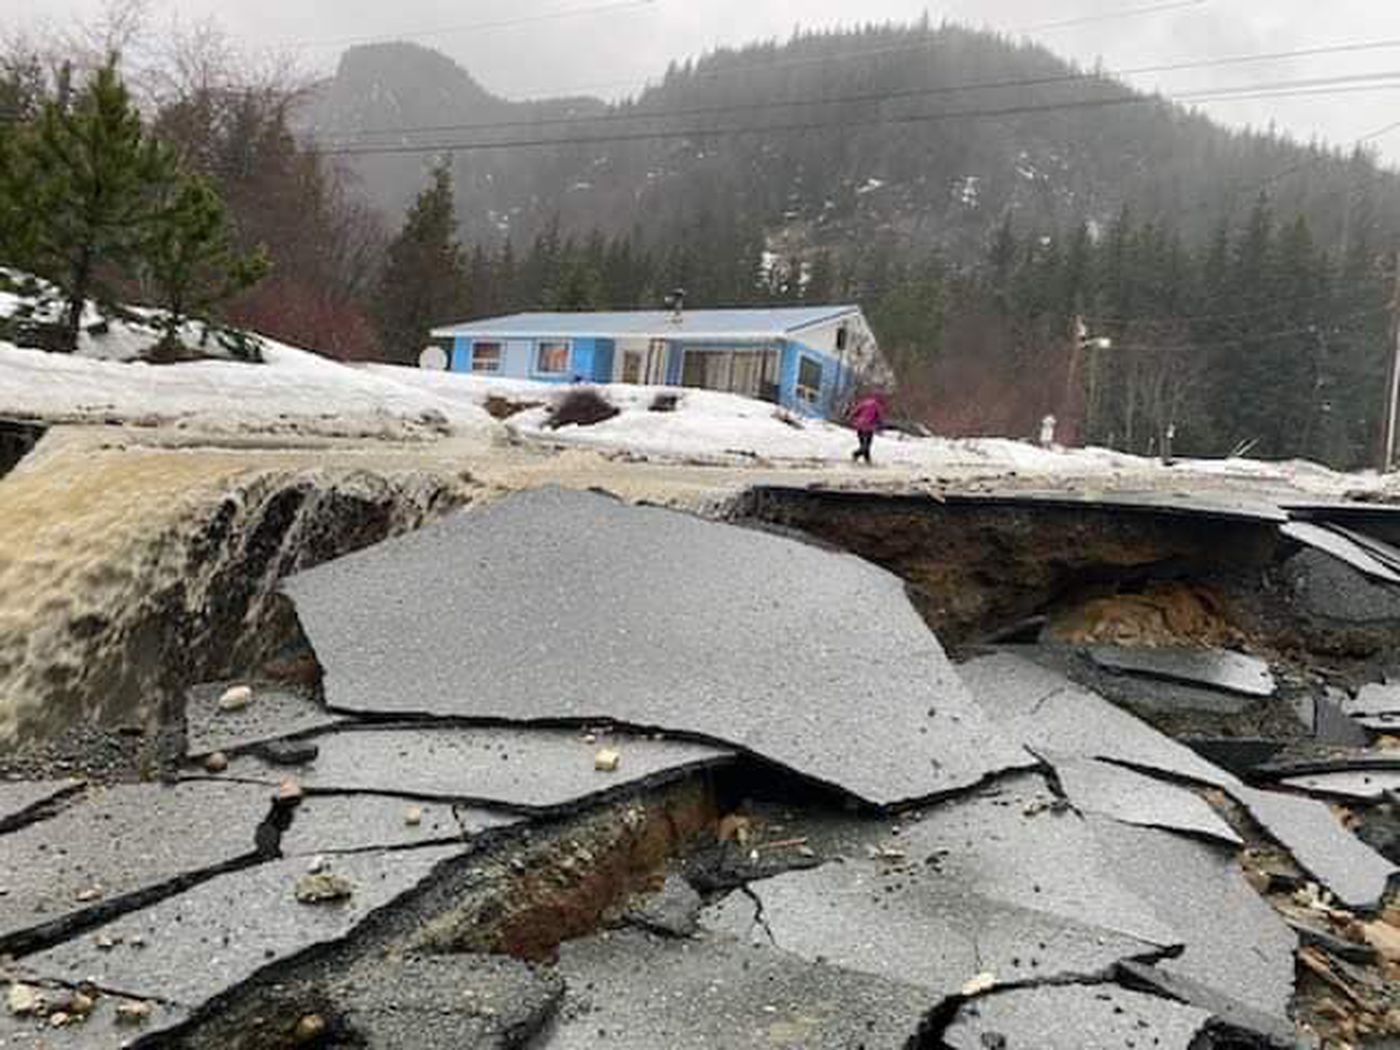 A record-breaking rainstorm triggered destructive avalanches, landslides and flooding in Haines, Alaska on Wednesday, Dec. 2, 2020. (Photo courtesy of Trevor Barrett)